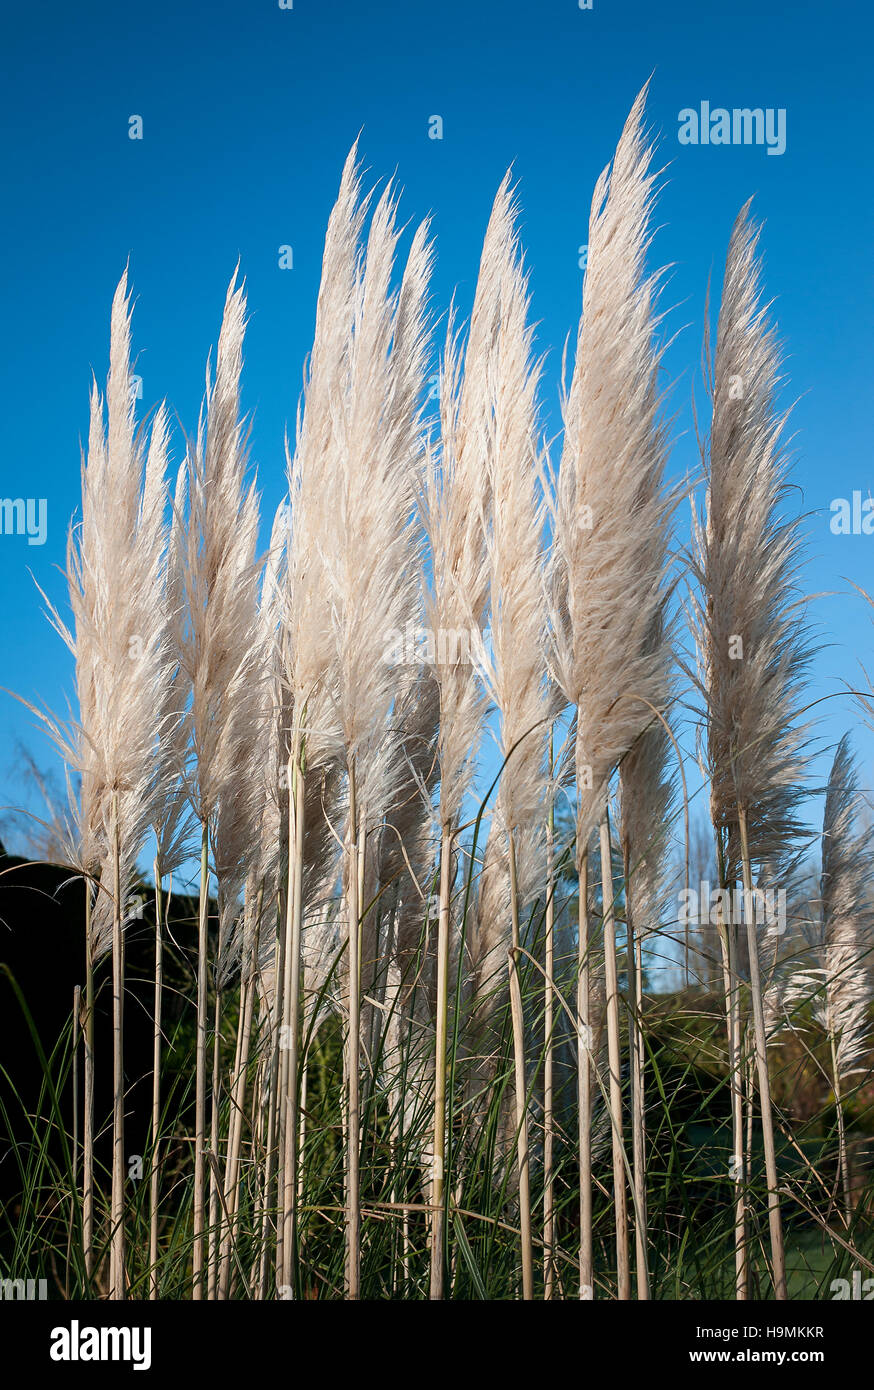 selloana cortaderia plumes against clear blue sky - Stock Image